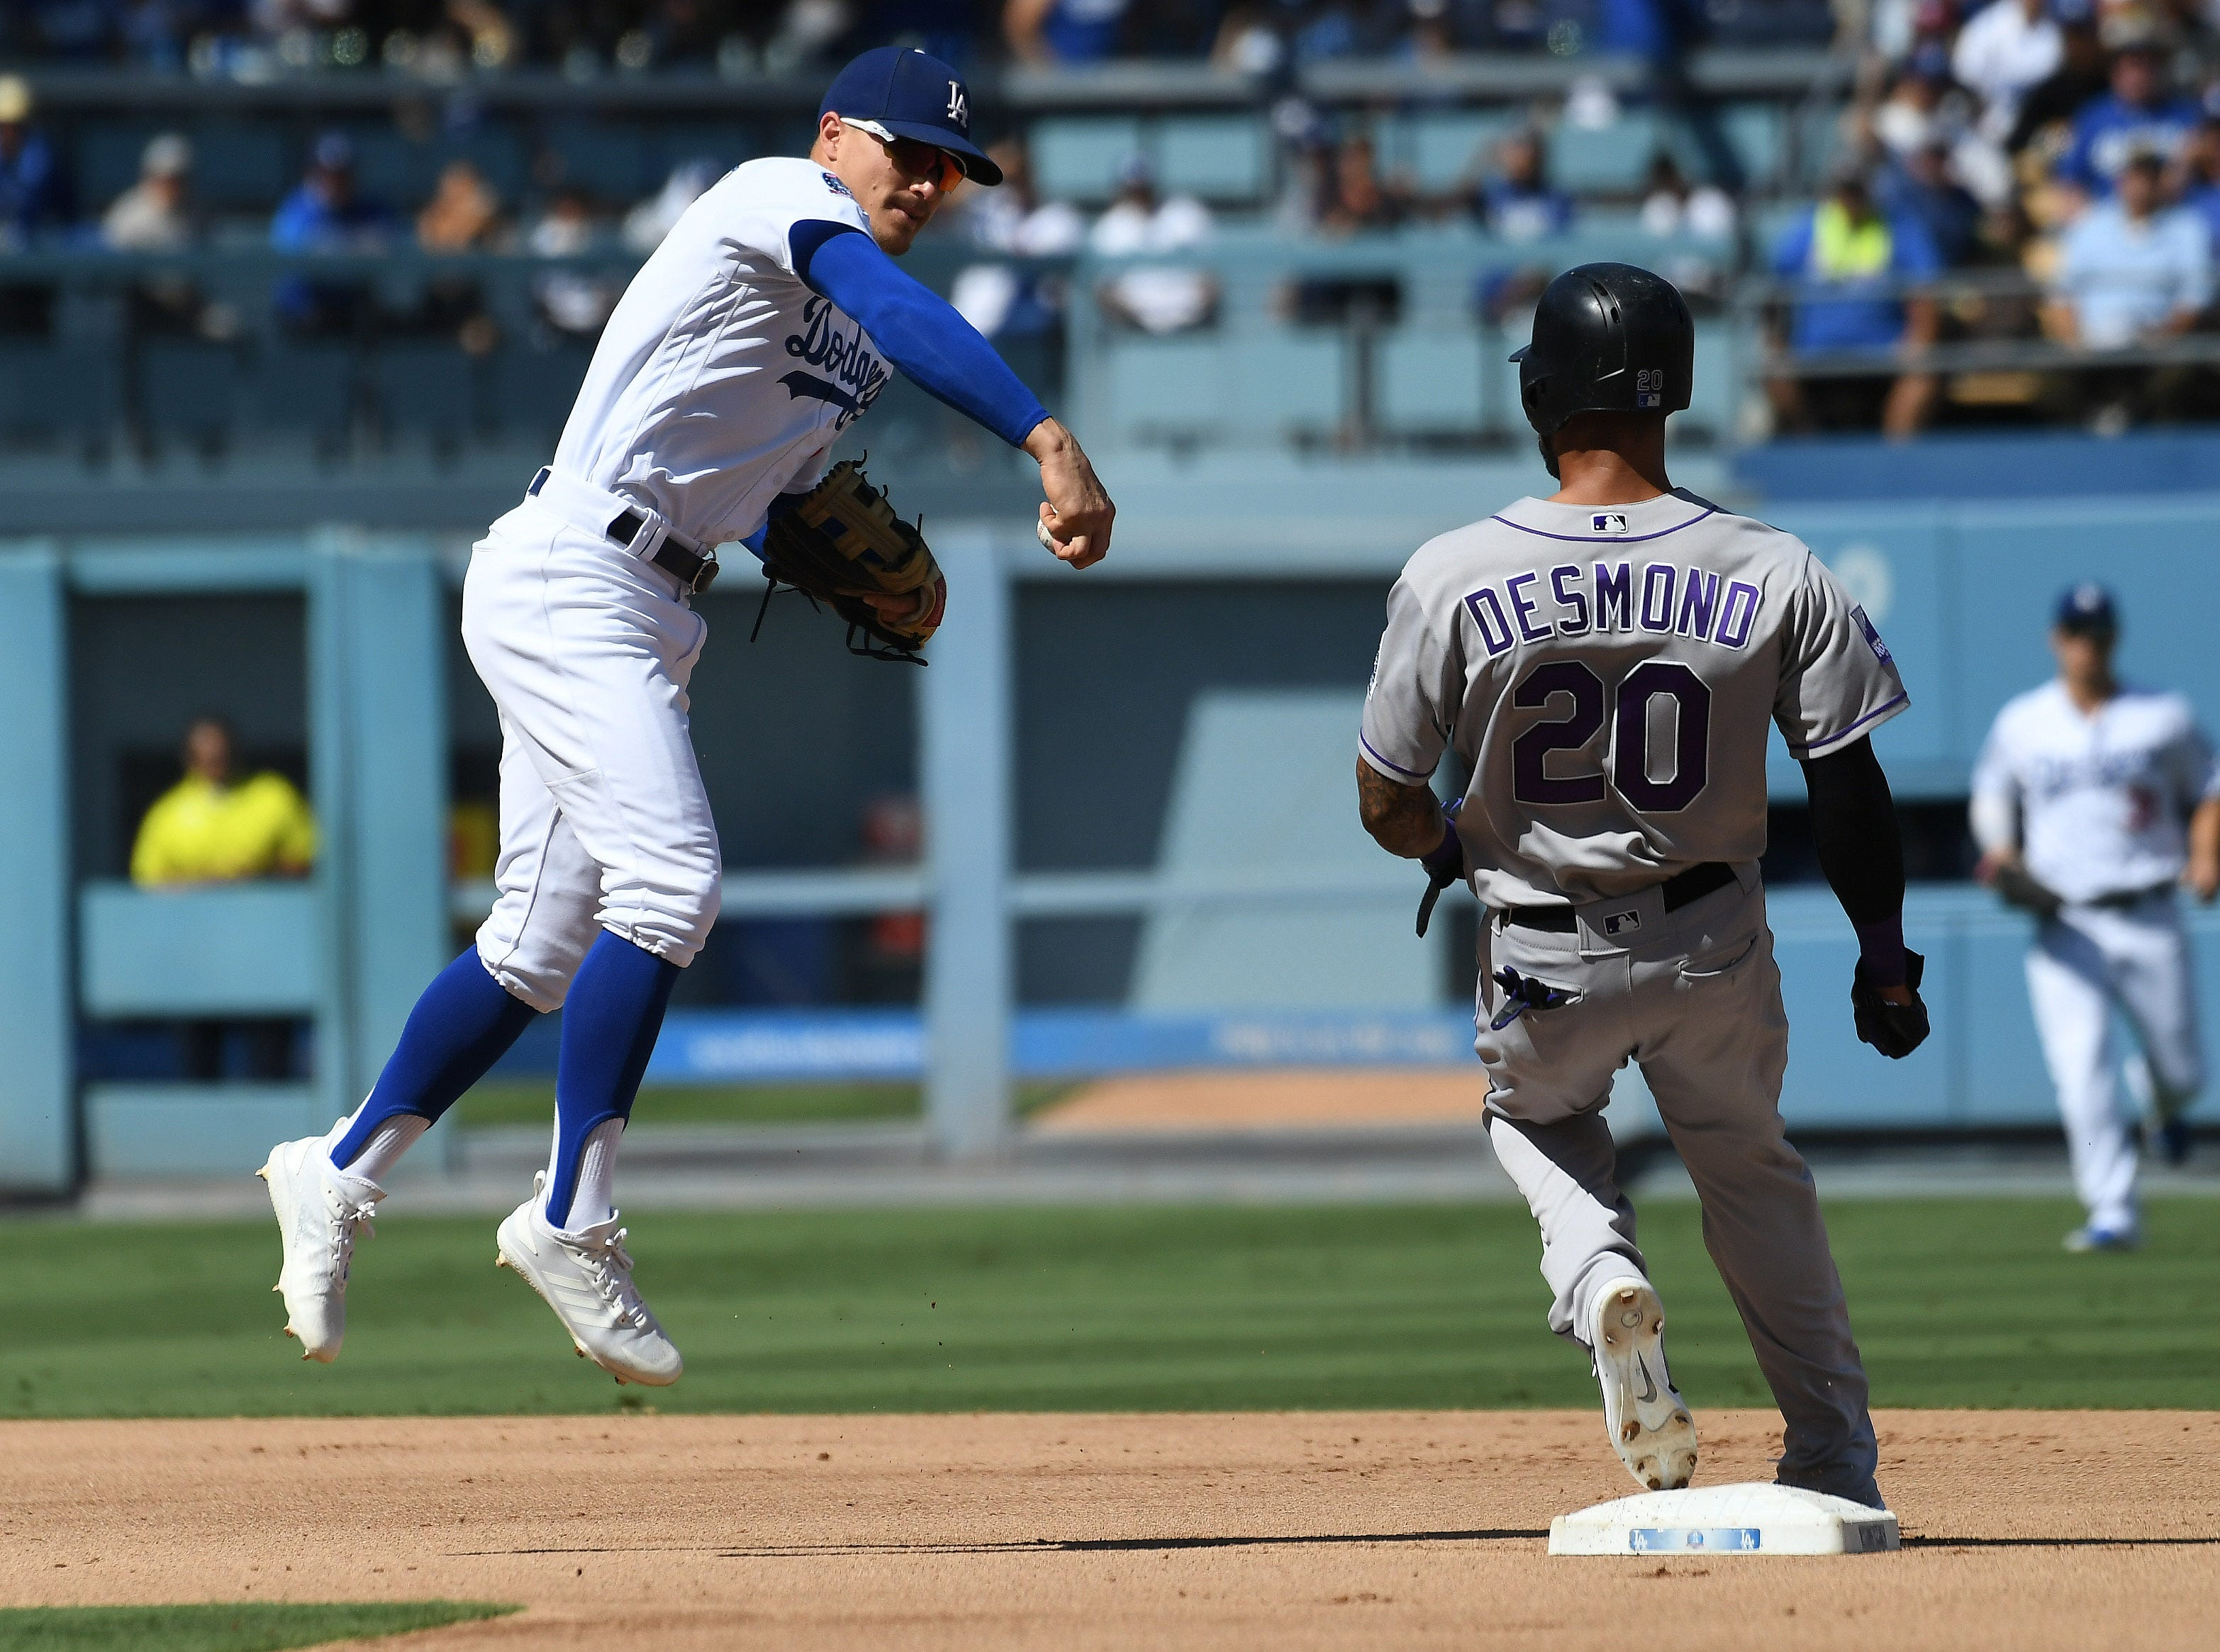 Colorado's Ian Desmond is out at second base as Dodgers infielder Kike Hernandez doesn't throw to first.